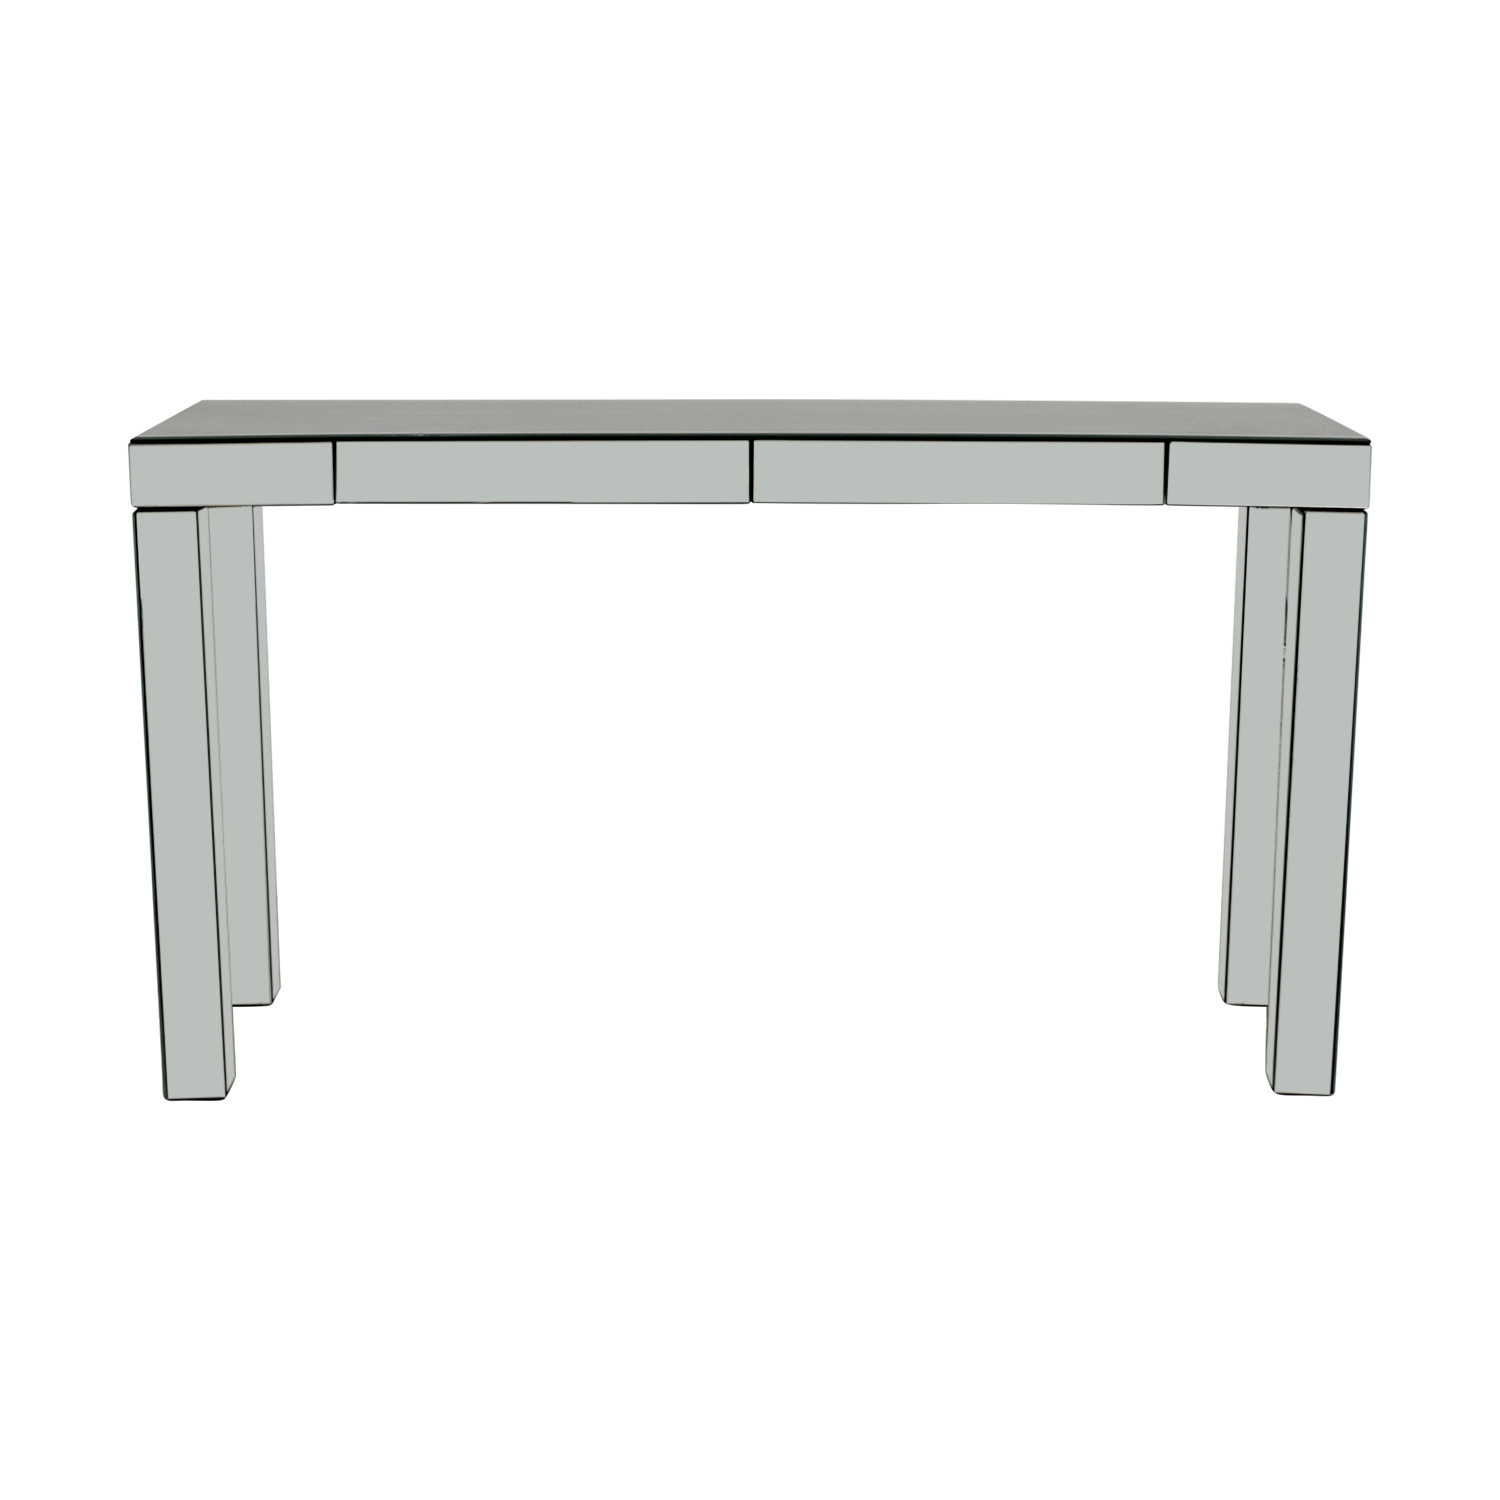 West Elm West Elm Parsons Mirrored Console coupon